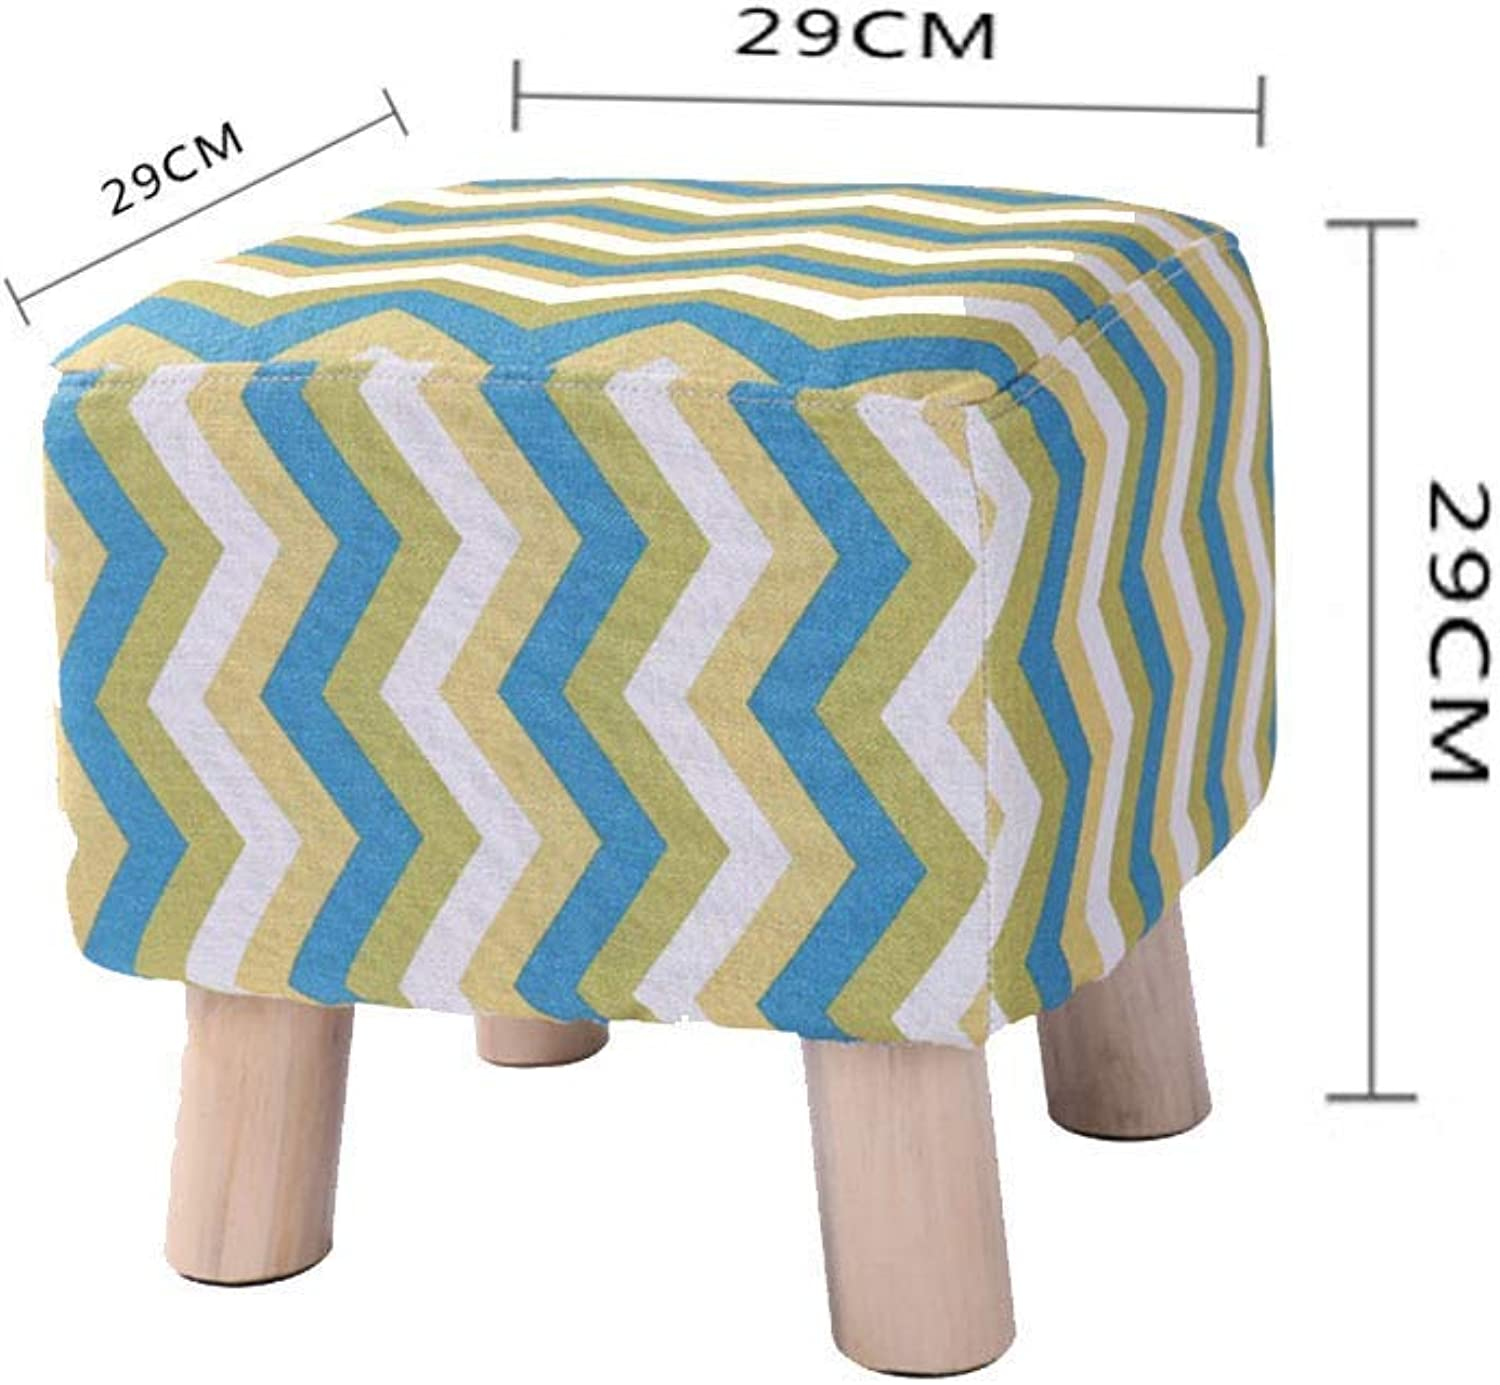 BBG Small Furniture Anti-Slip Stool Footstool shoes Bench Sofa Stool Change shoes Bench Wooden Stool Cloth Change shoes Sofa Home Fashion Solid Wood Multi-Function Stool Multifunction Household Creativ